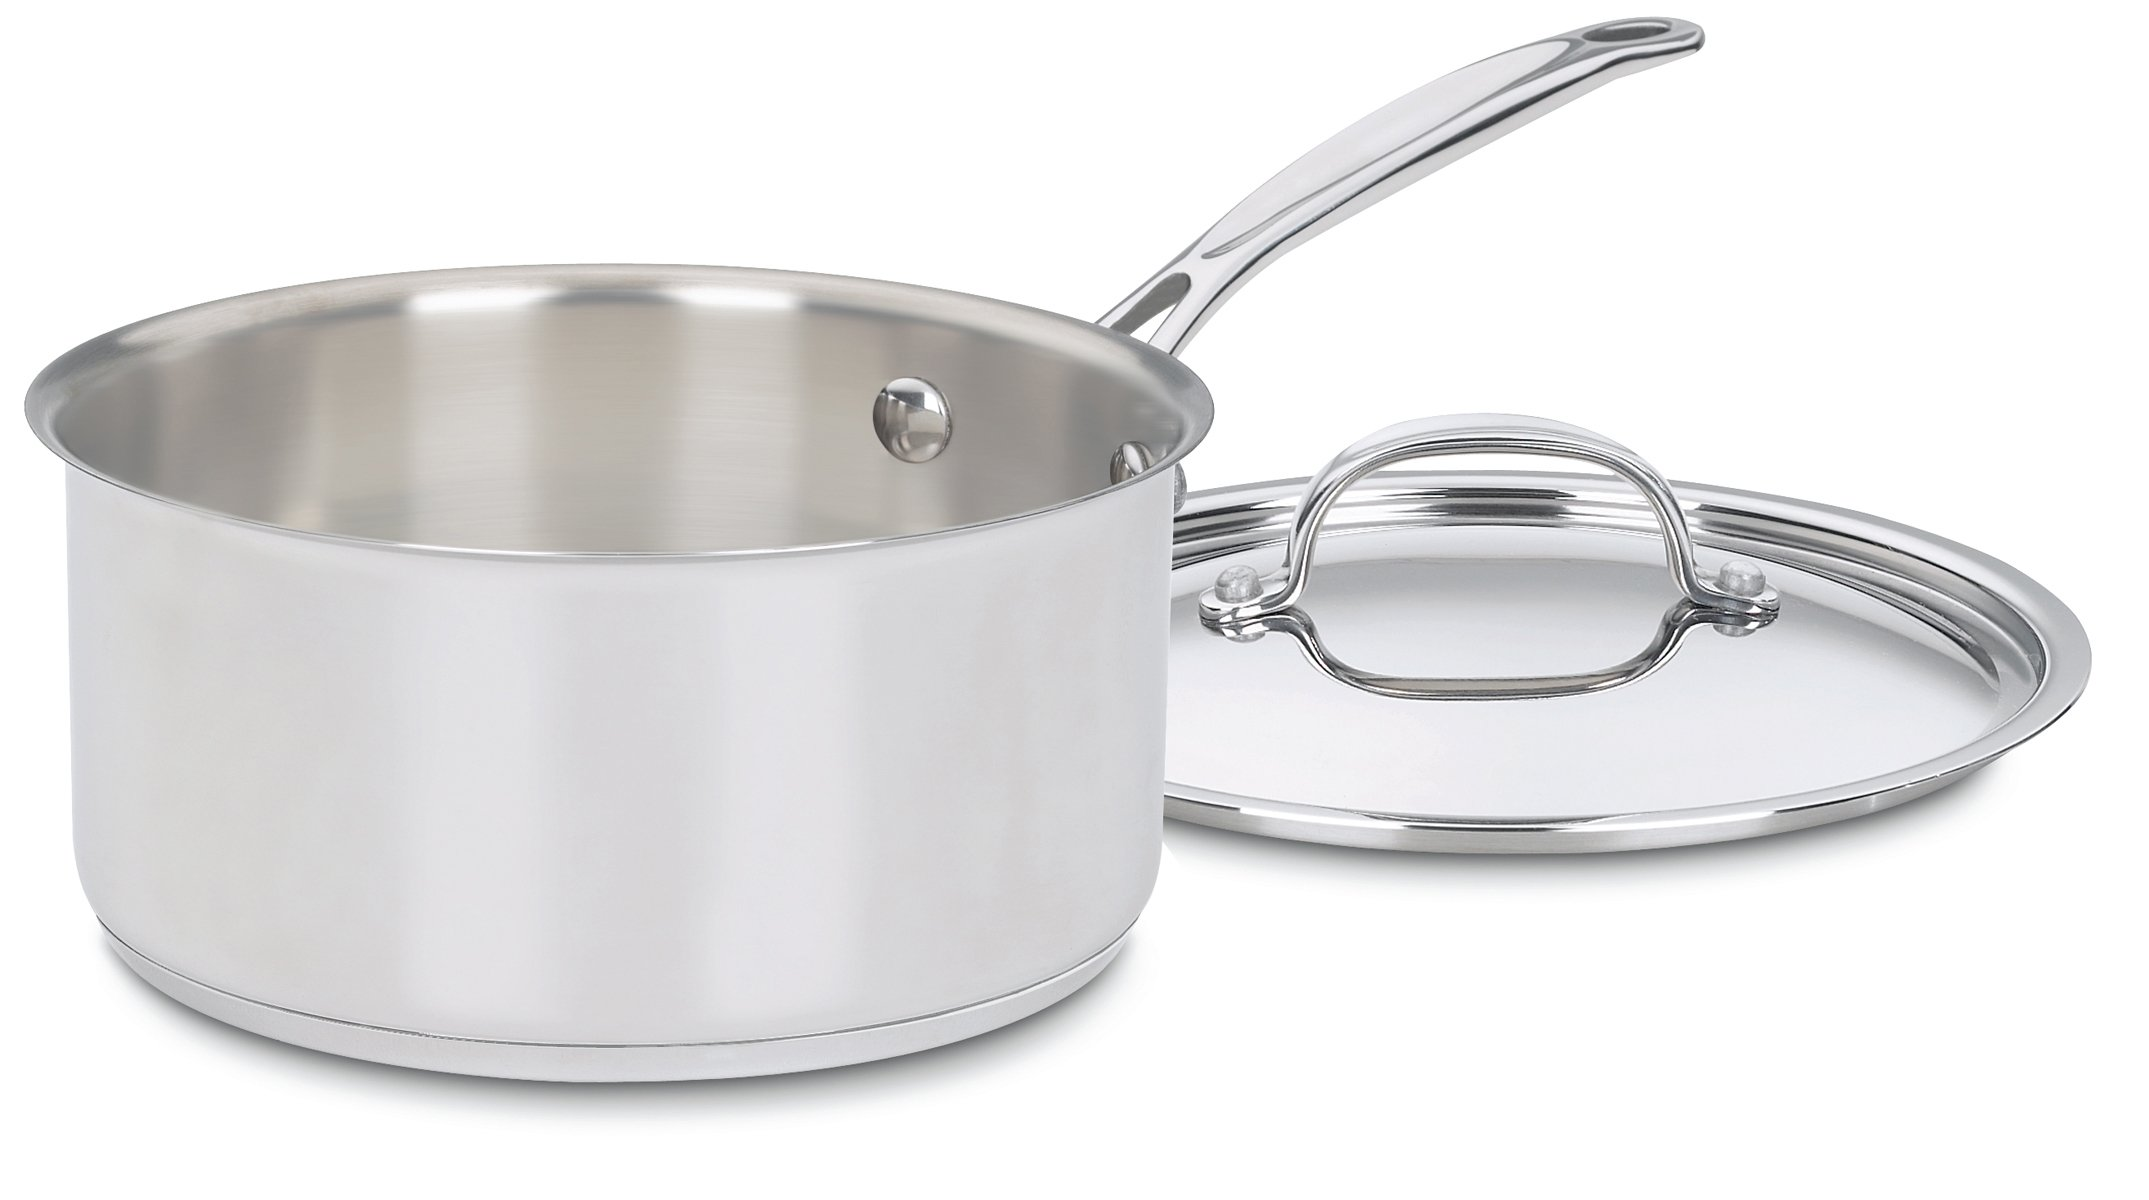 Cuisinart 7193-20 Chef's Classic Stainless 3-Quart Saucepan with Cover by Cuisinart